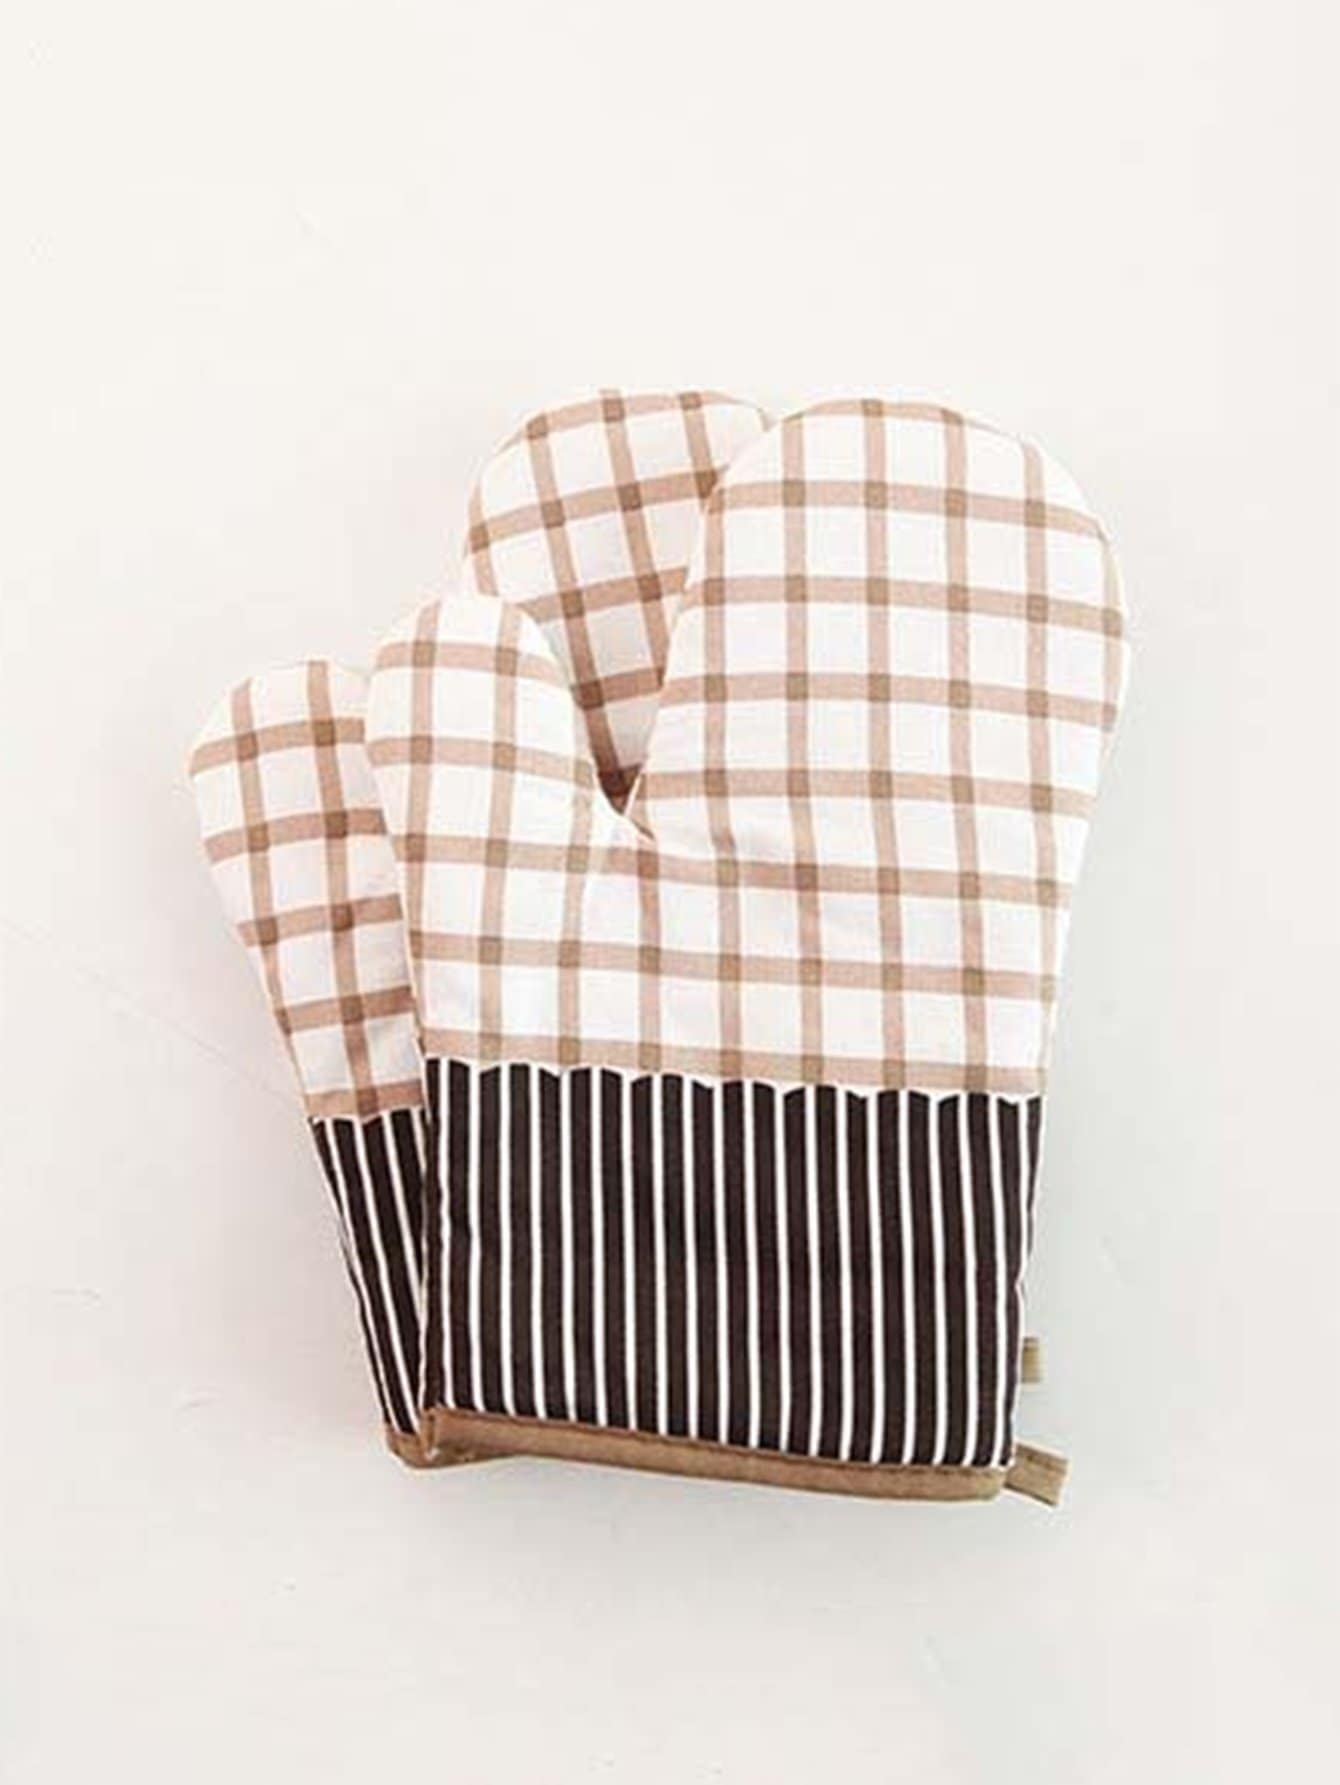 Grid & Striped Oven Glove 1pc alex clark rooster double oven glove